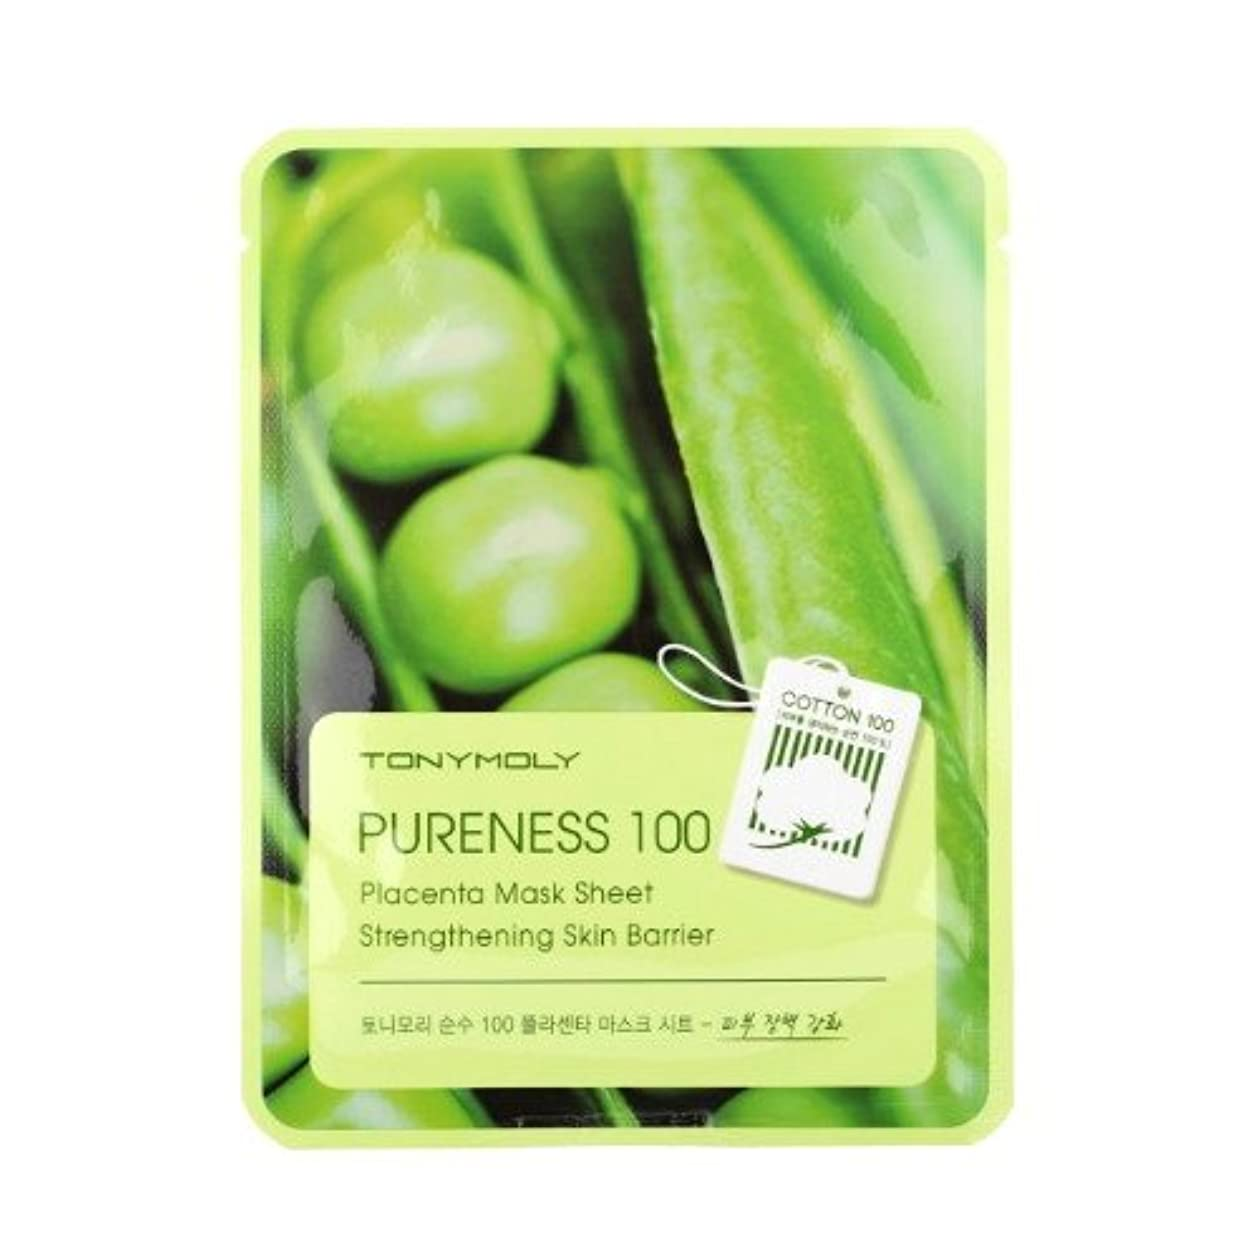 土砂降り出力疲れた(3 Pack) TONYMOLY Pureness 100 Placenta Mask Sheet Strengthening Skin Barrier (並行輸入品)